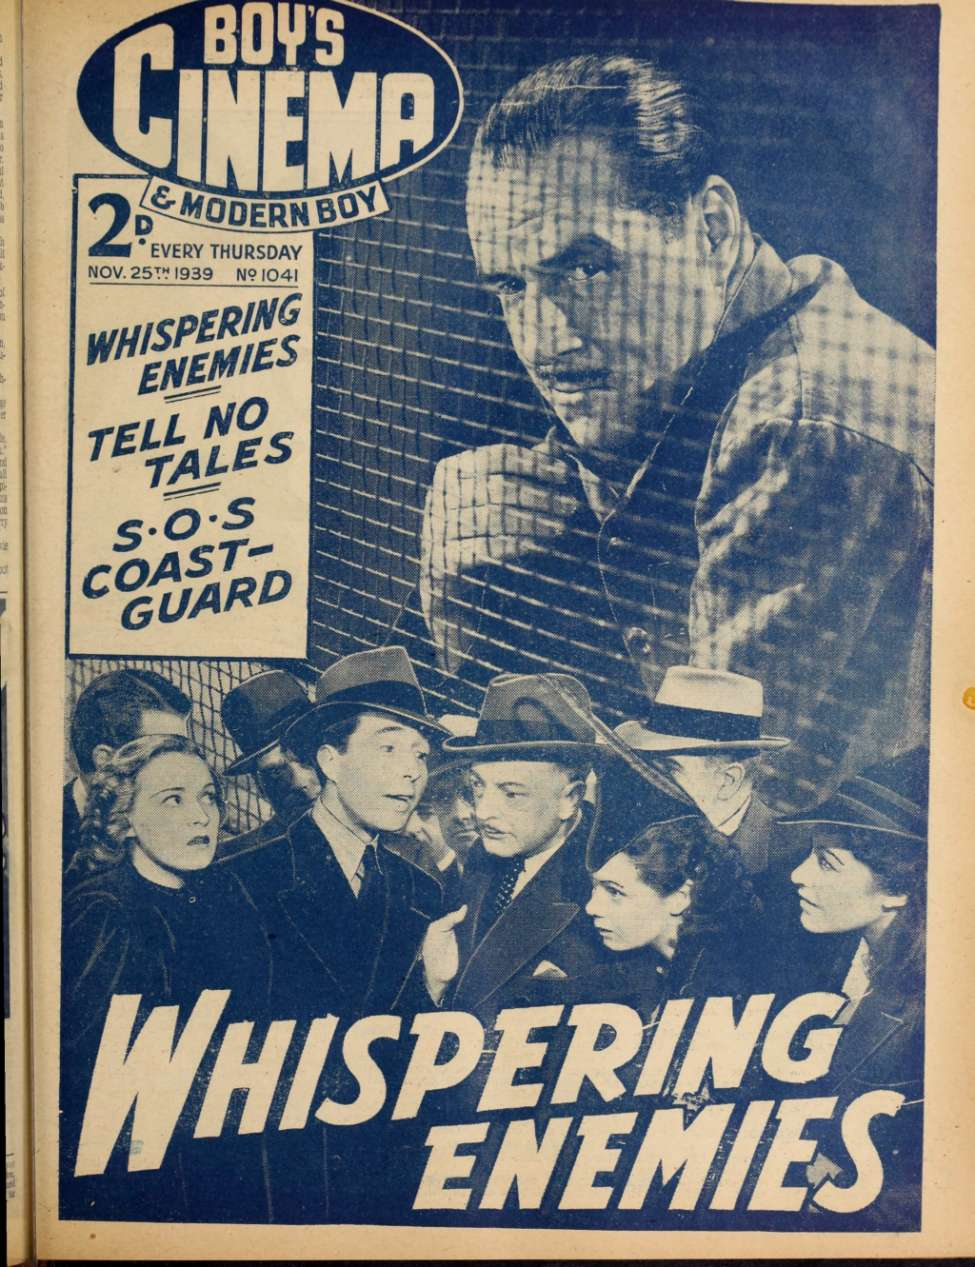 Comic Book Cover For Boy's Cinema 1041 - Whispering Enemies - Jack Holt